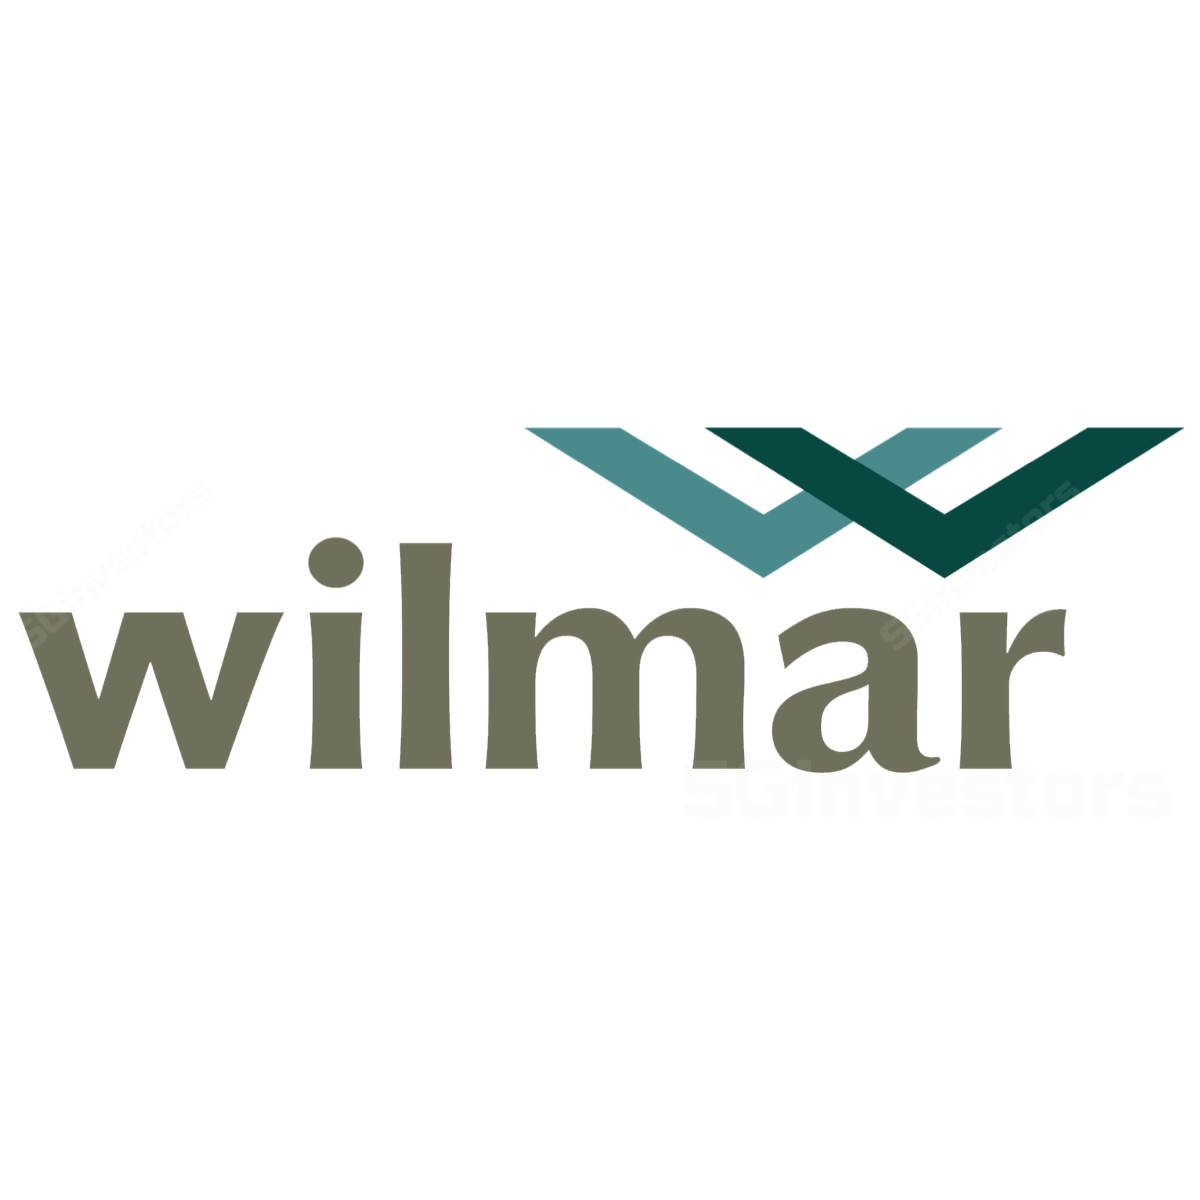 Wilmar International (WIL SP) - UOB Kay Hian 2017-03-29: Core Businesses Remain Intact; Upgrade To HOLD After Recent Share Price Correction